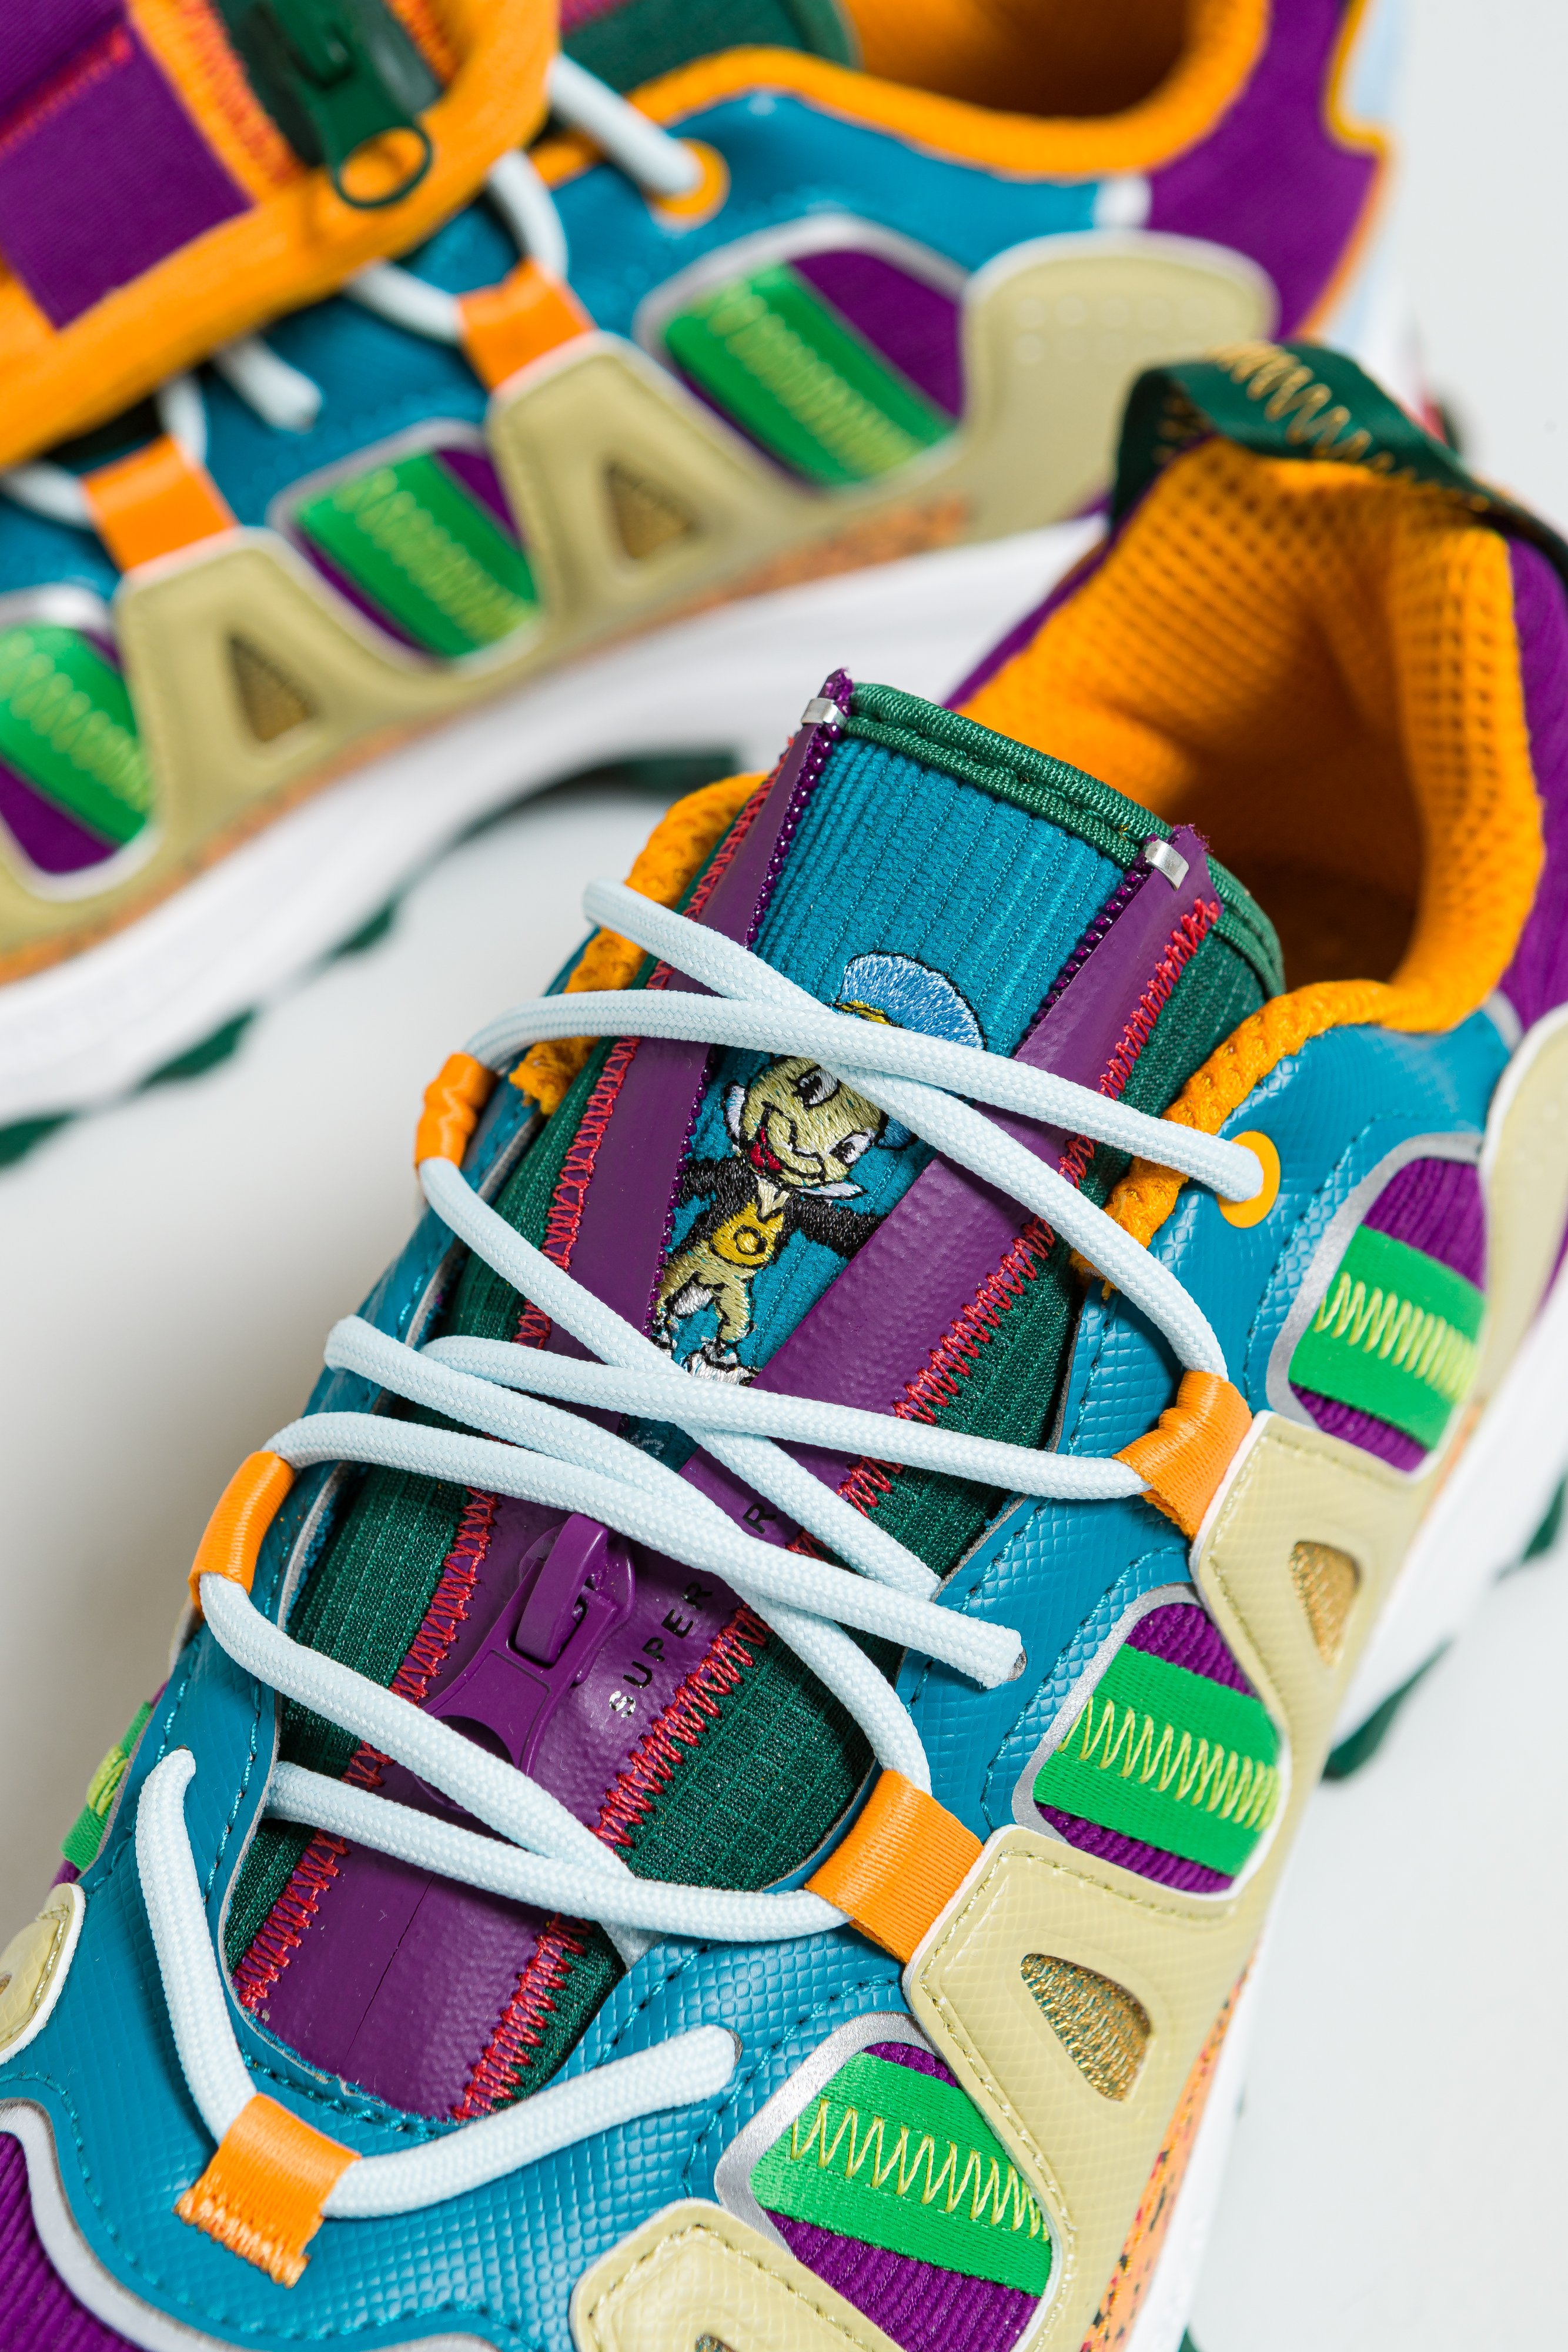 Up There Store - adidas Originals X Sean Wotherspoon Superturf Adventure